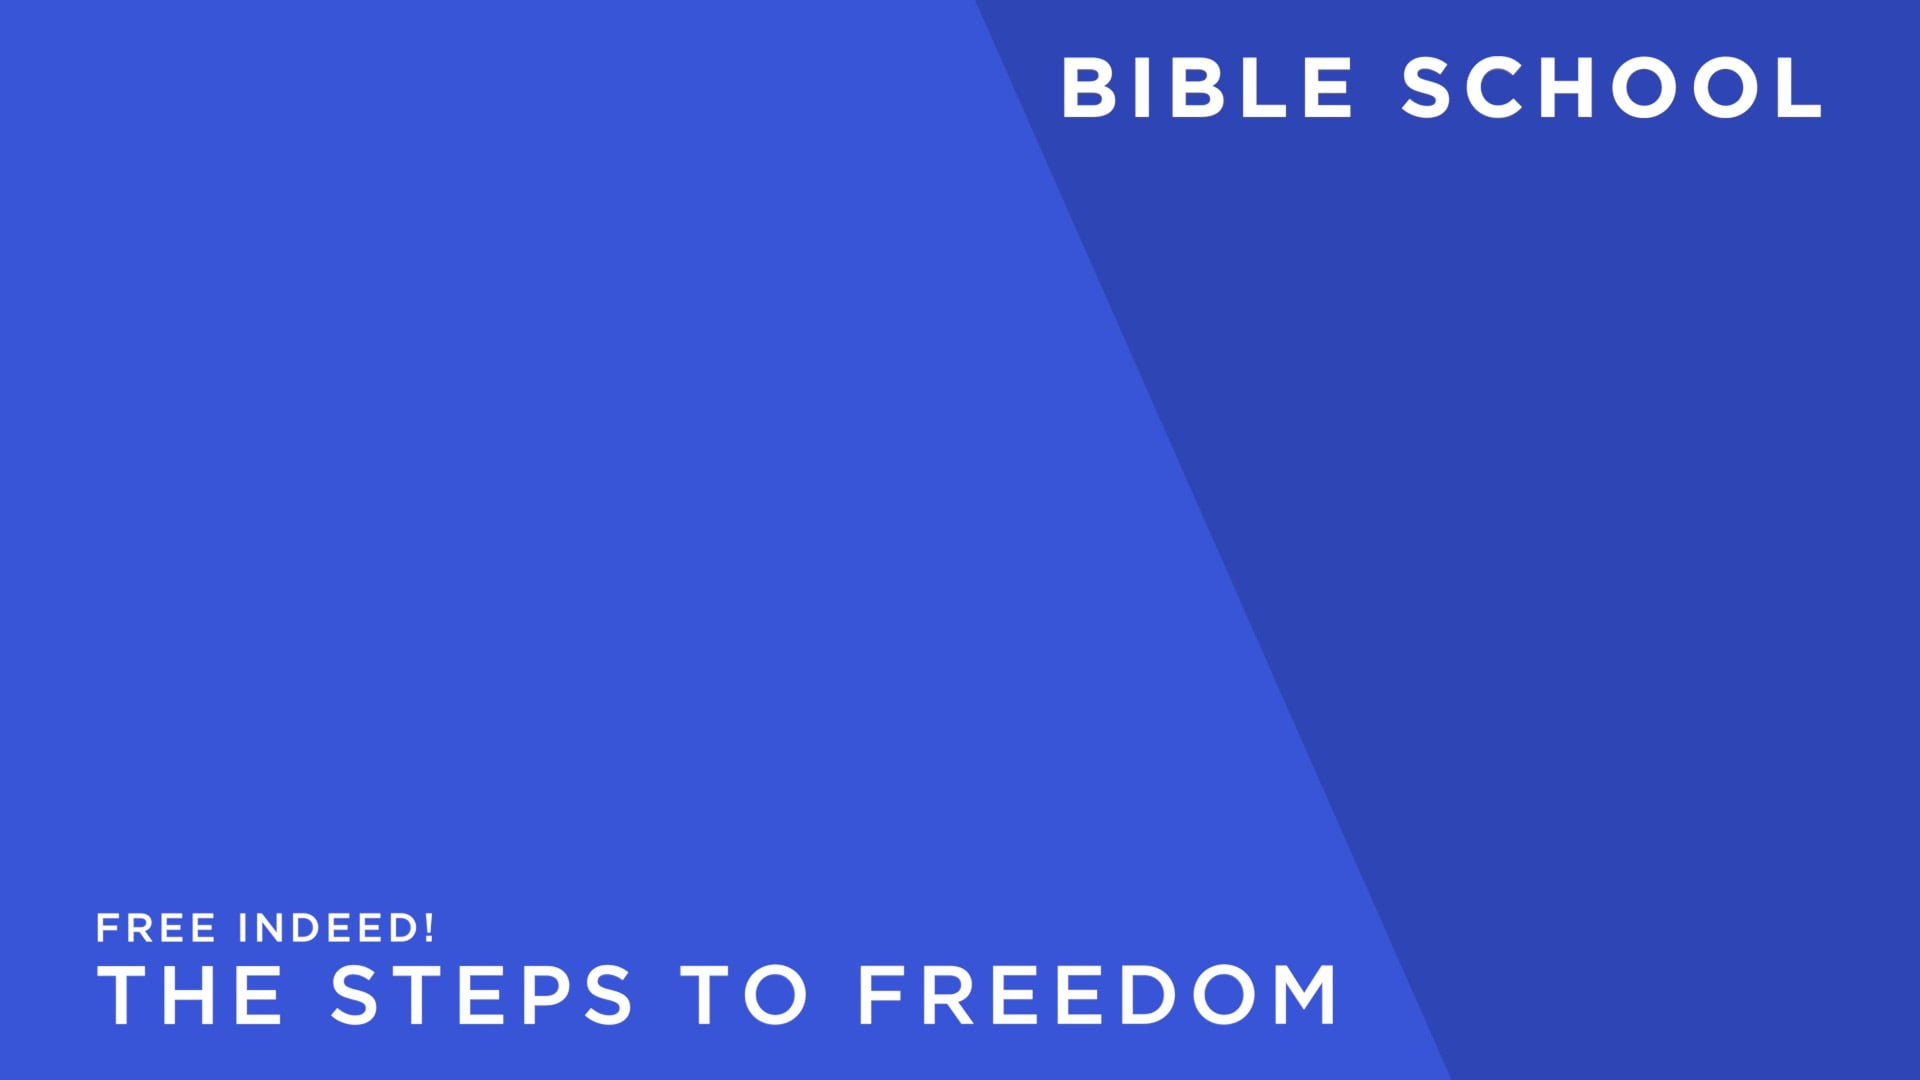 Free Indeed! [9] The Steps to Freedom